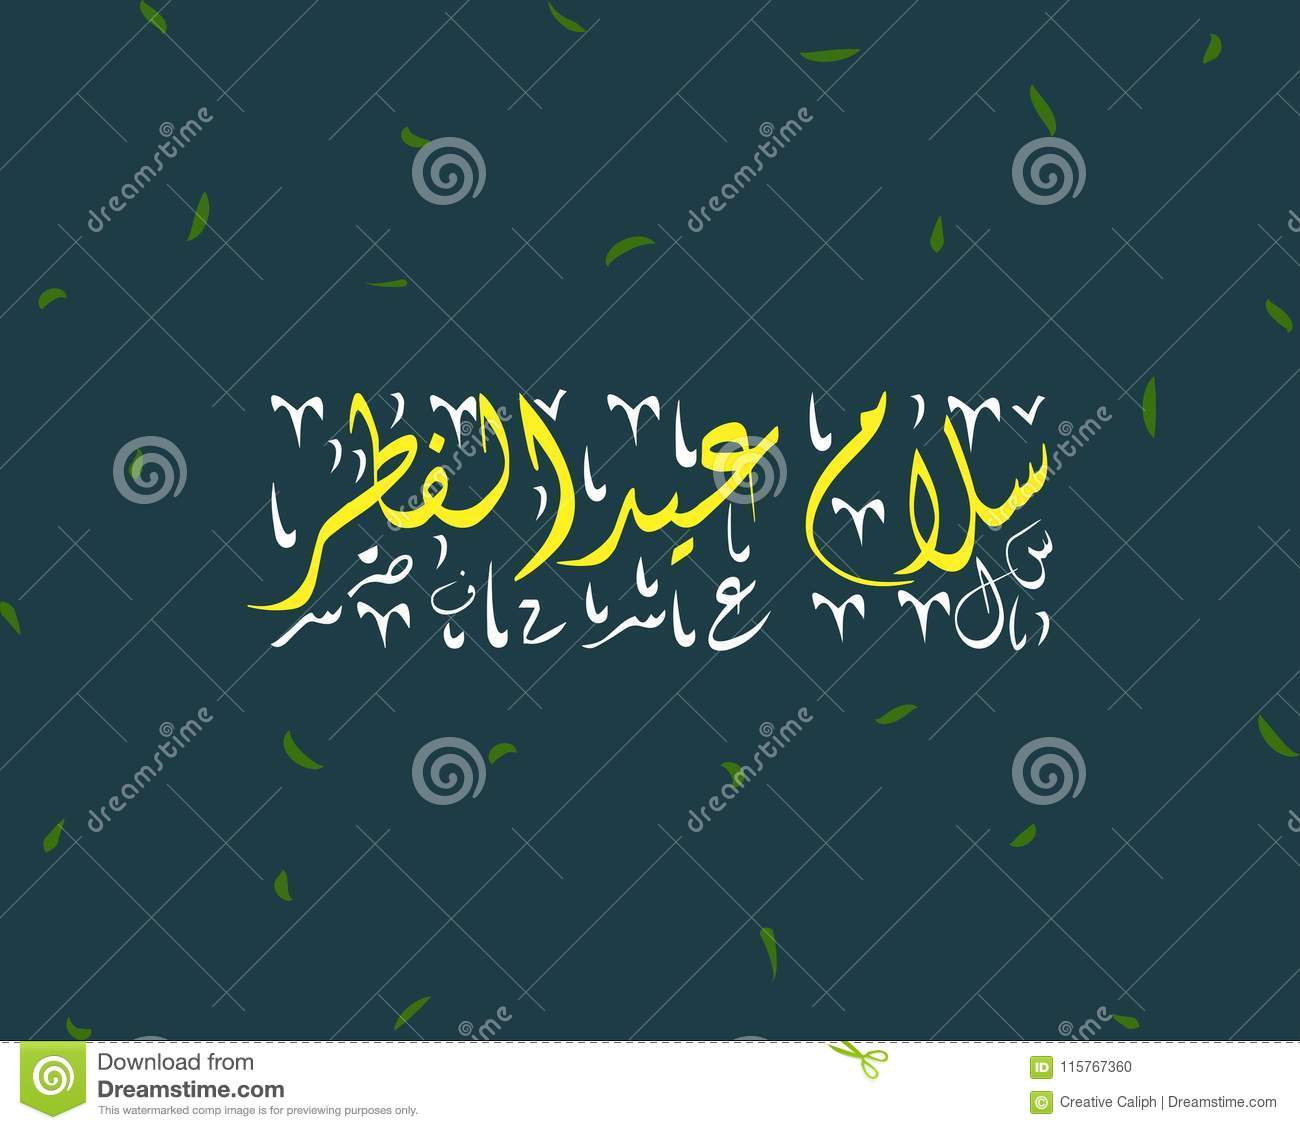 Vector illustration of salam aidilfitri and eid mubarak arabic text illustration of salam aidilfitri and eid mubarak arabic text greetings english translation of breakfasting celebration day m4hsunfo